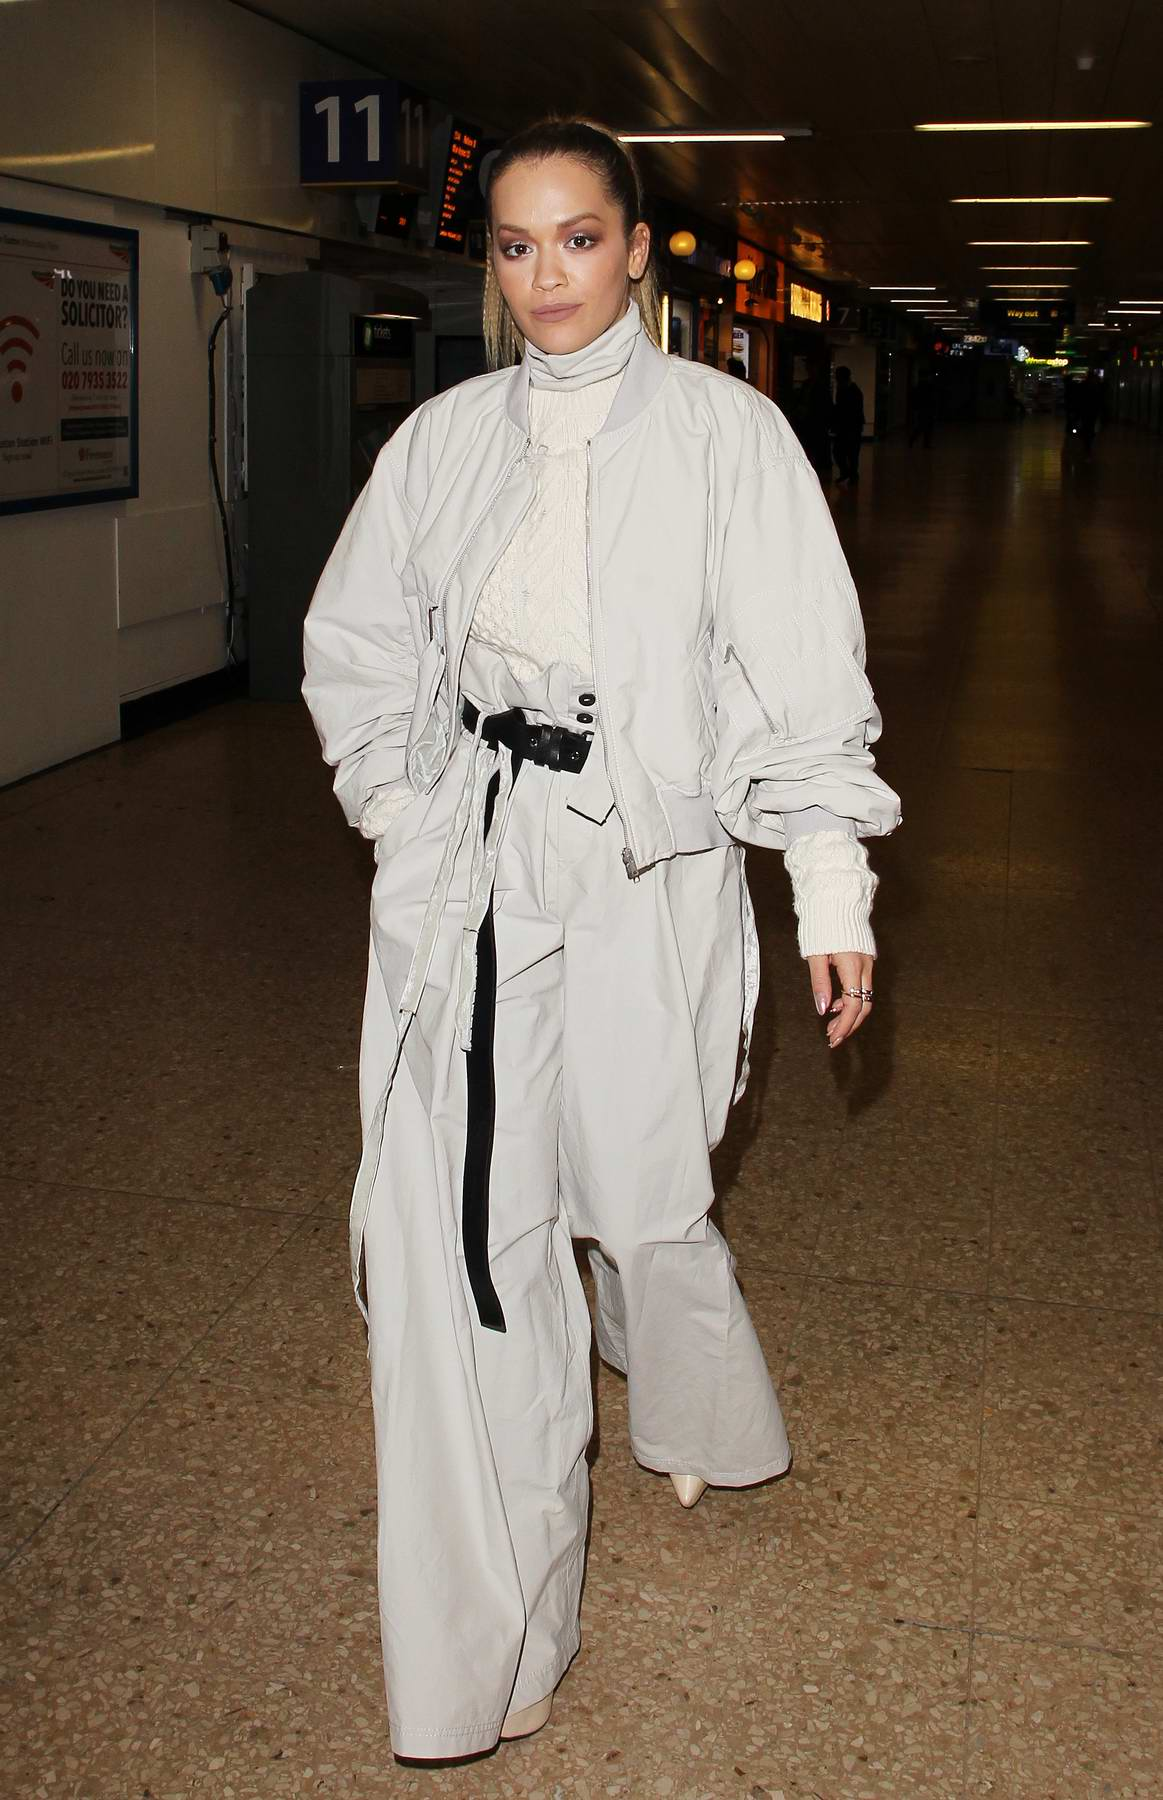 Rita Ora seen arriving back at London Euston station after performing in Manchester